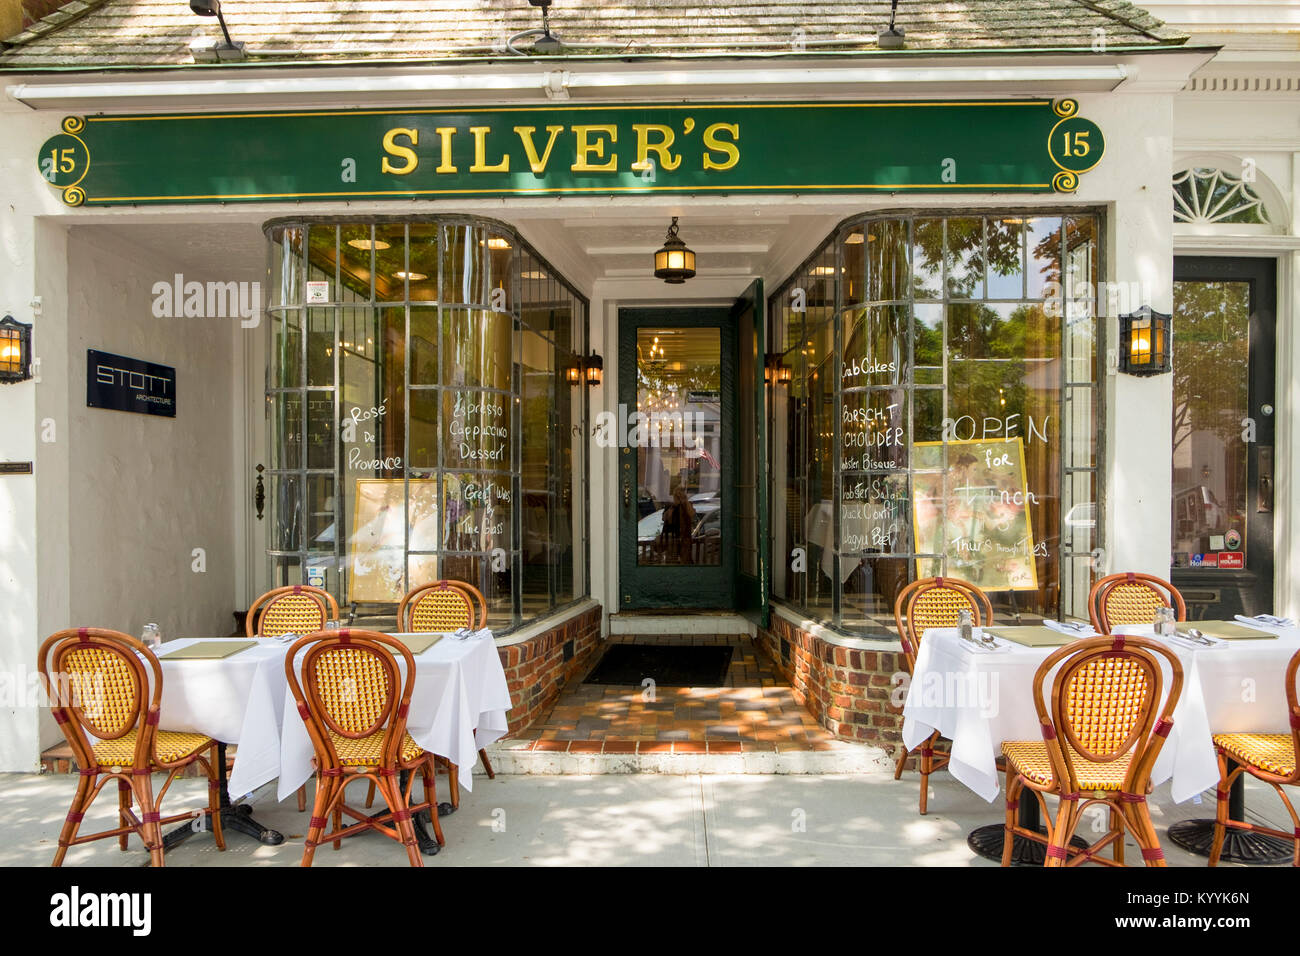 Long Island, Silvers restaurant in Southampton village, The Hamptons, New York, USA - Stock Image